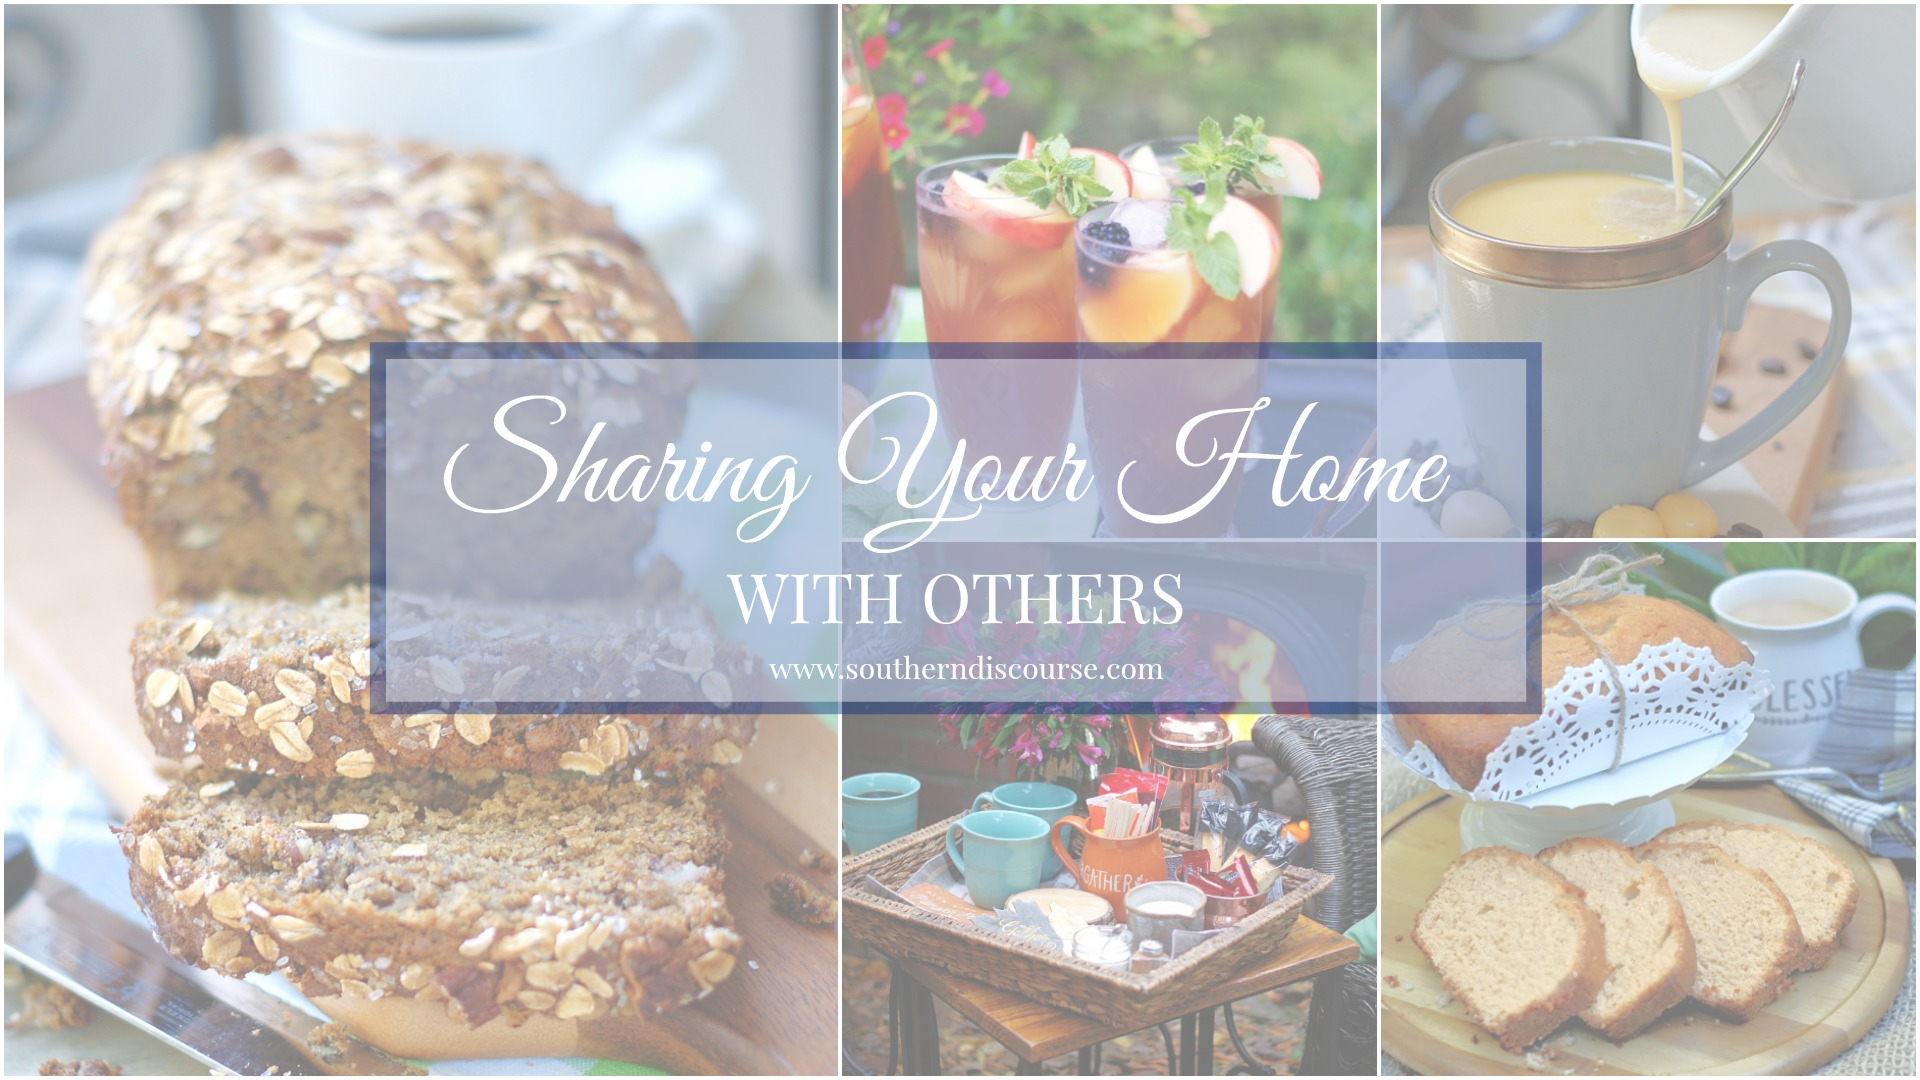 Sharing your home collage